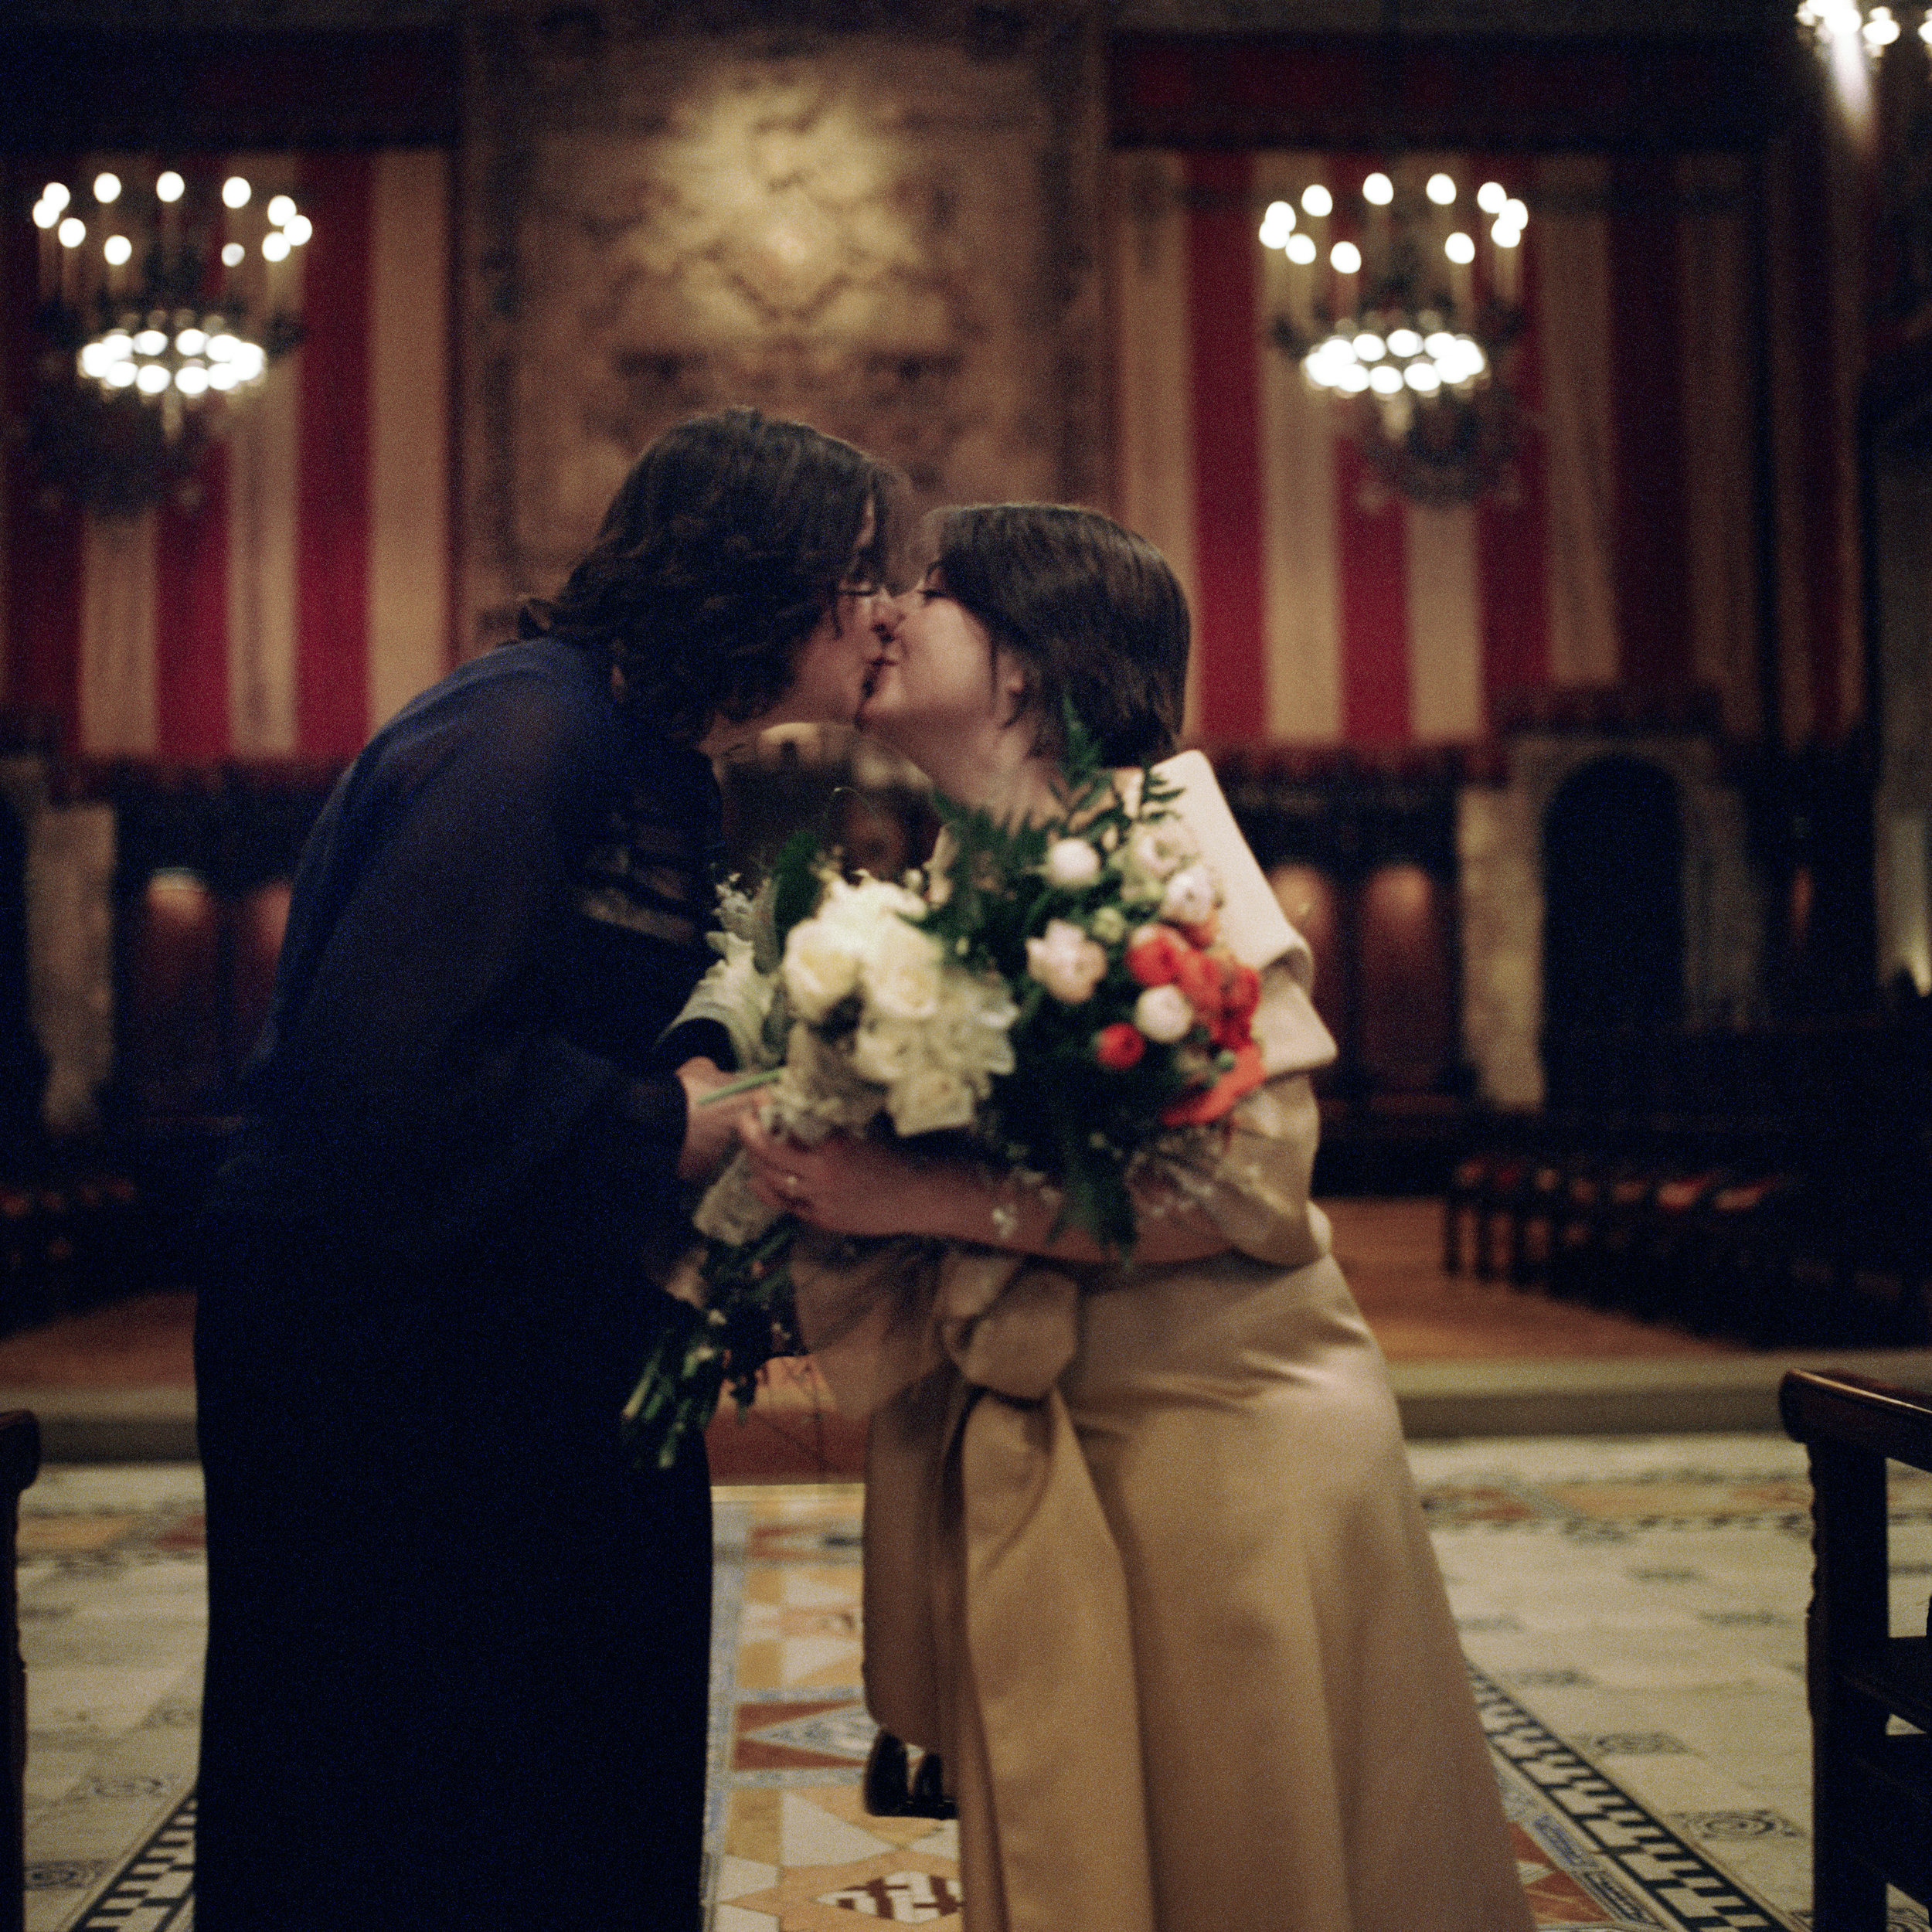 Chiara and Roberta were married at Barcelona City Hall in 2010. Their marriage was not recognized in Italy.